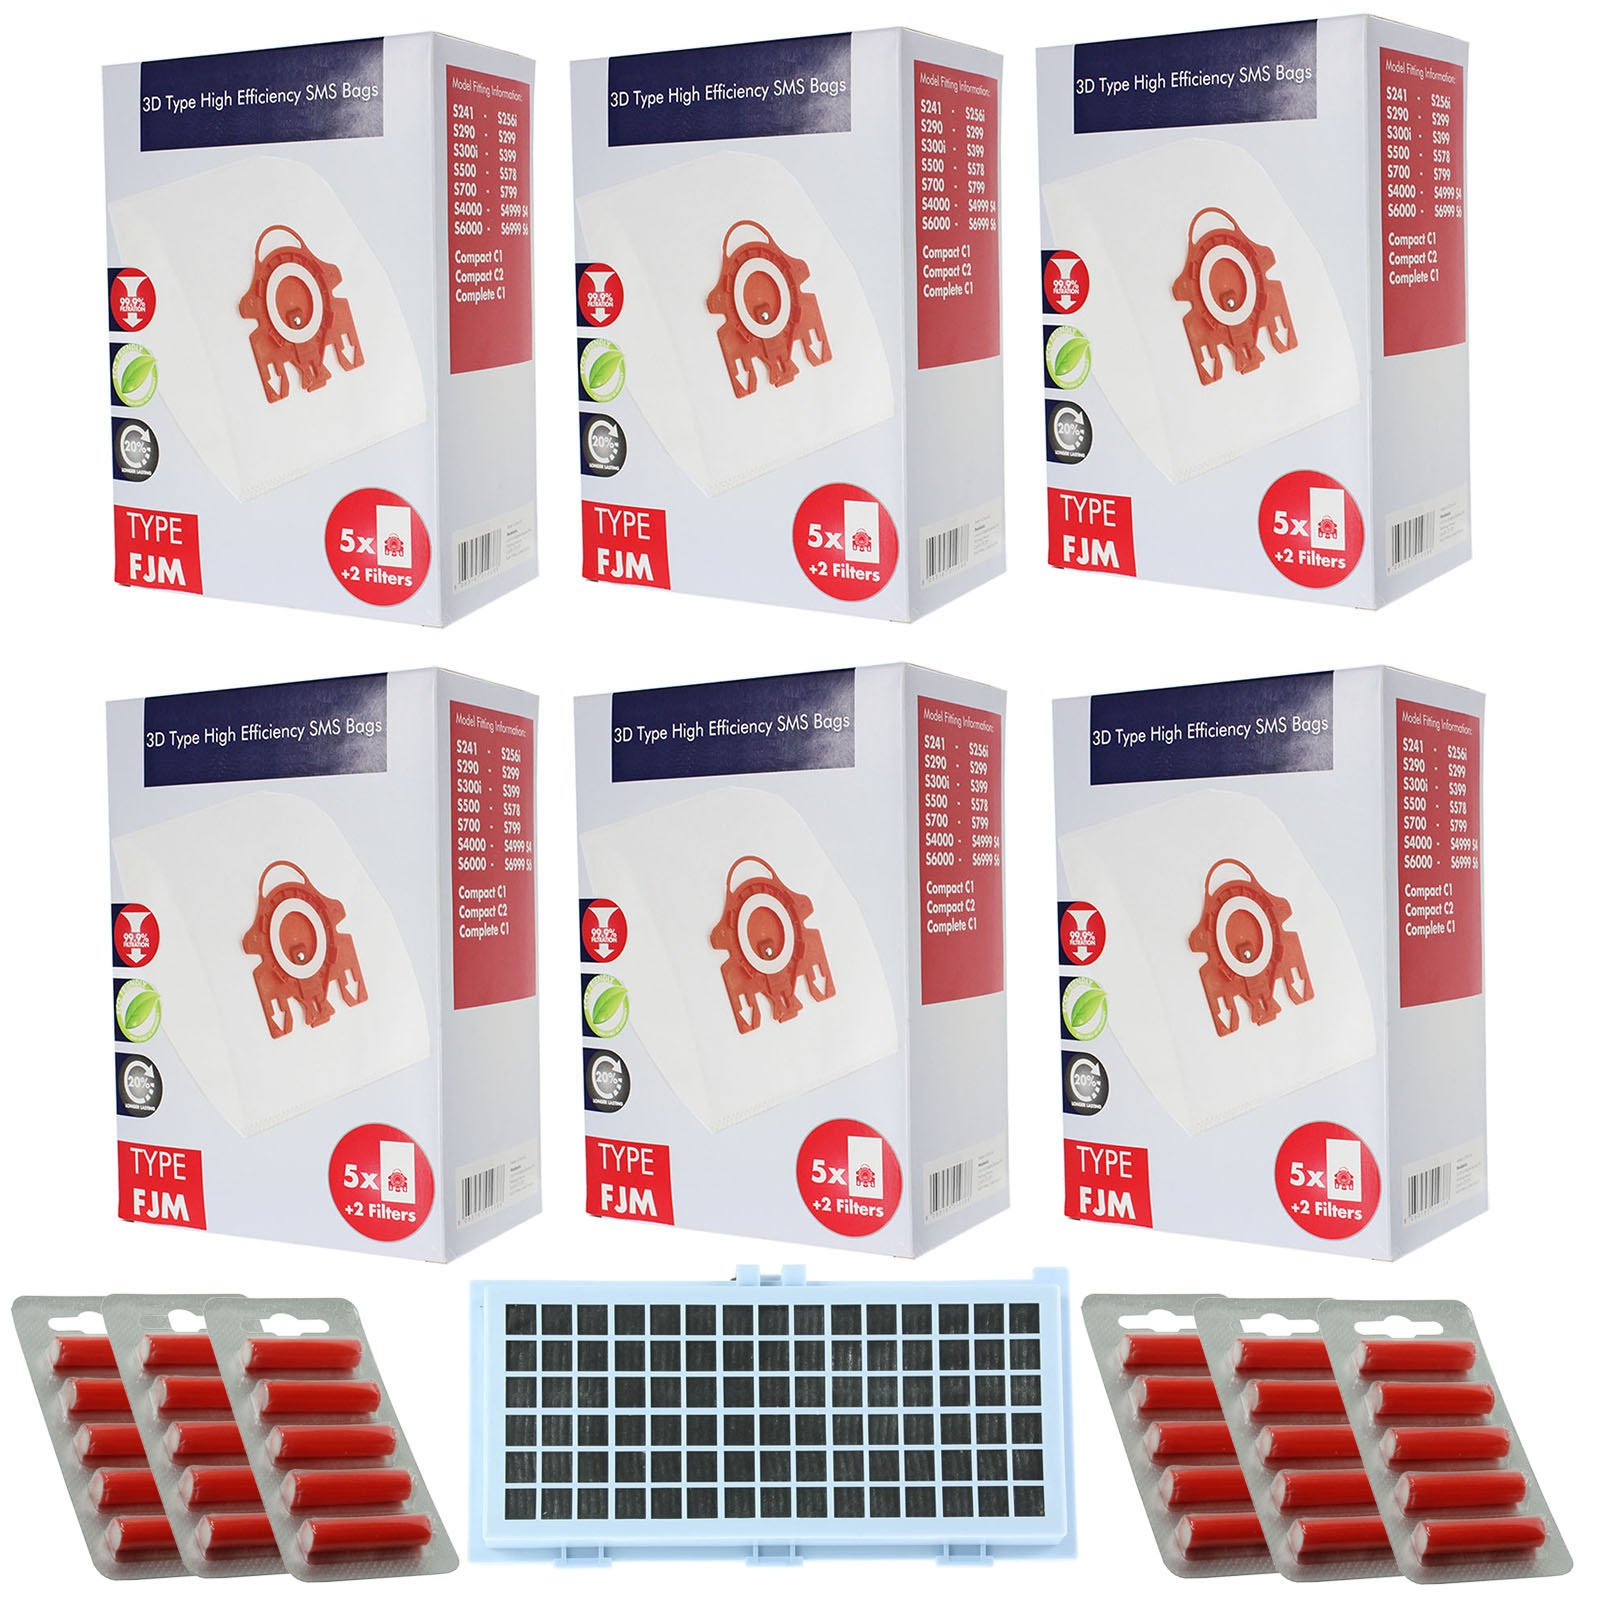 Spares2go 3D FJM Type Hyclean Bags+For Miele TT1800 TT2000 Vacuum Cleaner 30 Bags+Active HEPA Filter+Micro+Fresheners